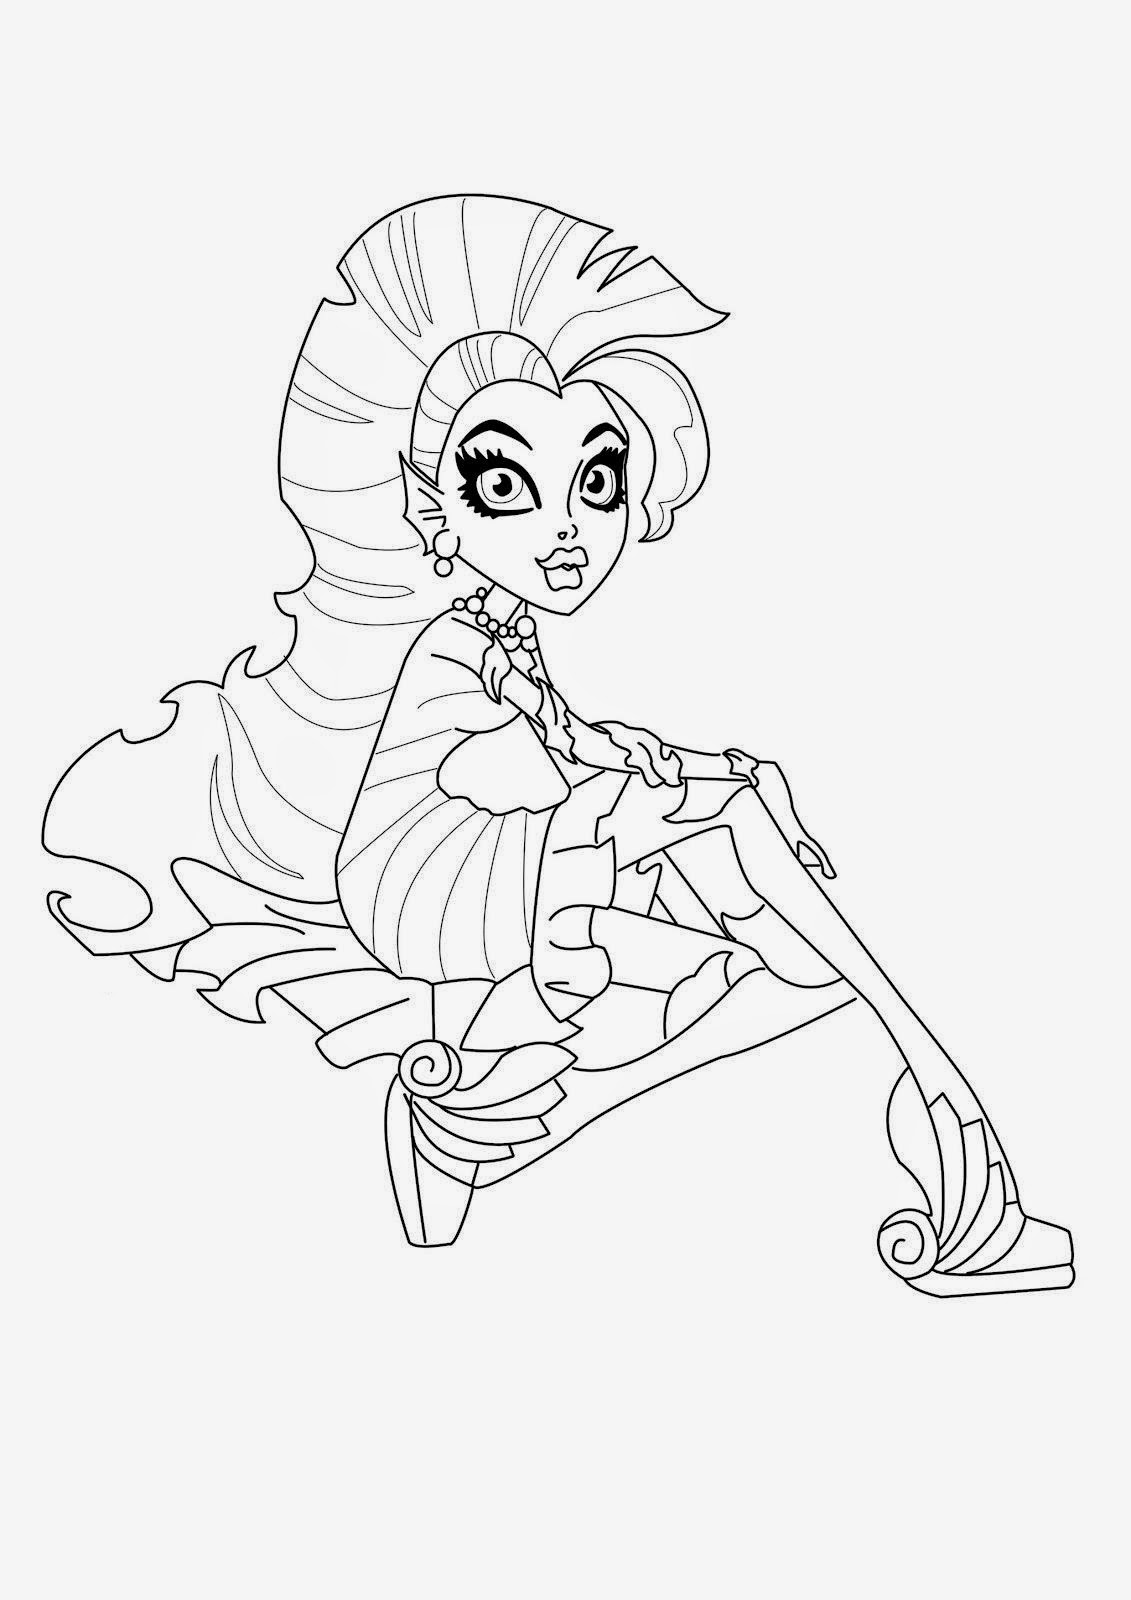 monster high free printable coloring pages print monster high coloring pages for free or download coloring monster pages high printable free